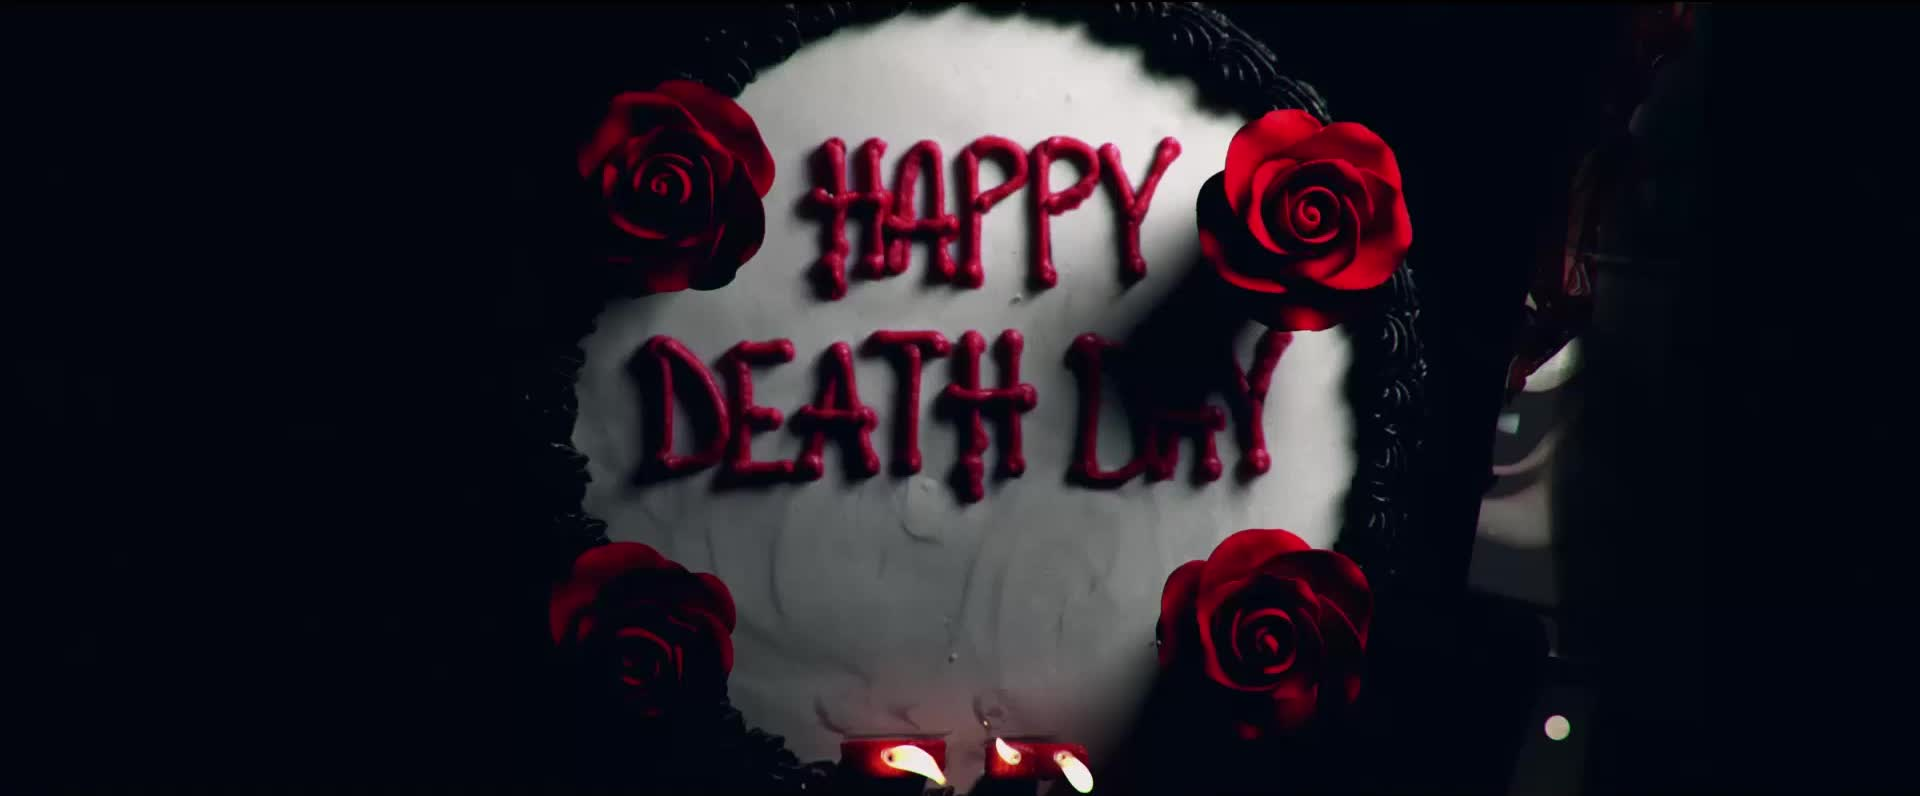 happy death day, happy death day 2, happy death day 2u, happy death day movie, happydeathday, hdd, hdd2u, Happy Death Day 2U GIFs